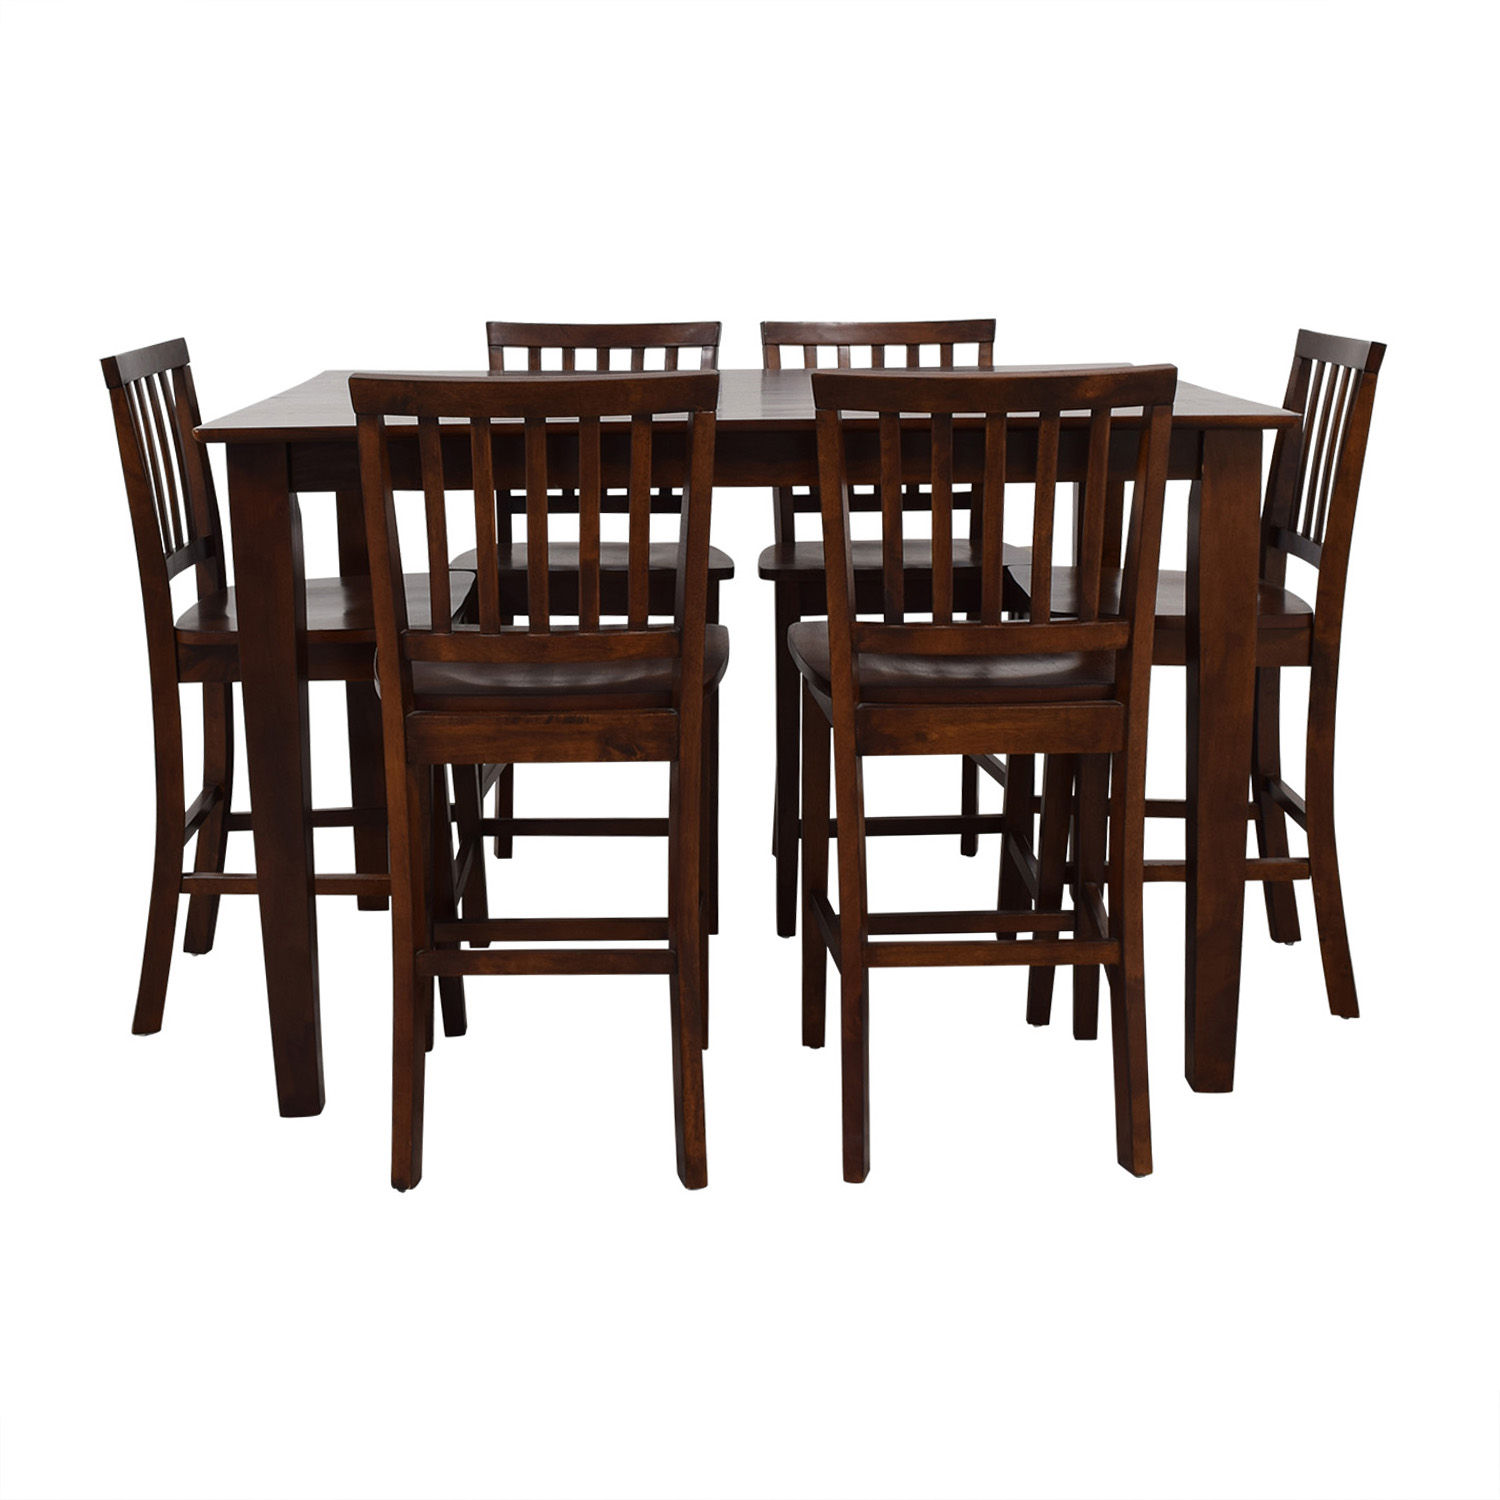 Bob's Discount Furniture Bob's Discount Furniture Extendable Dining Set brown